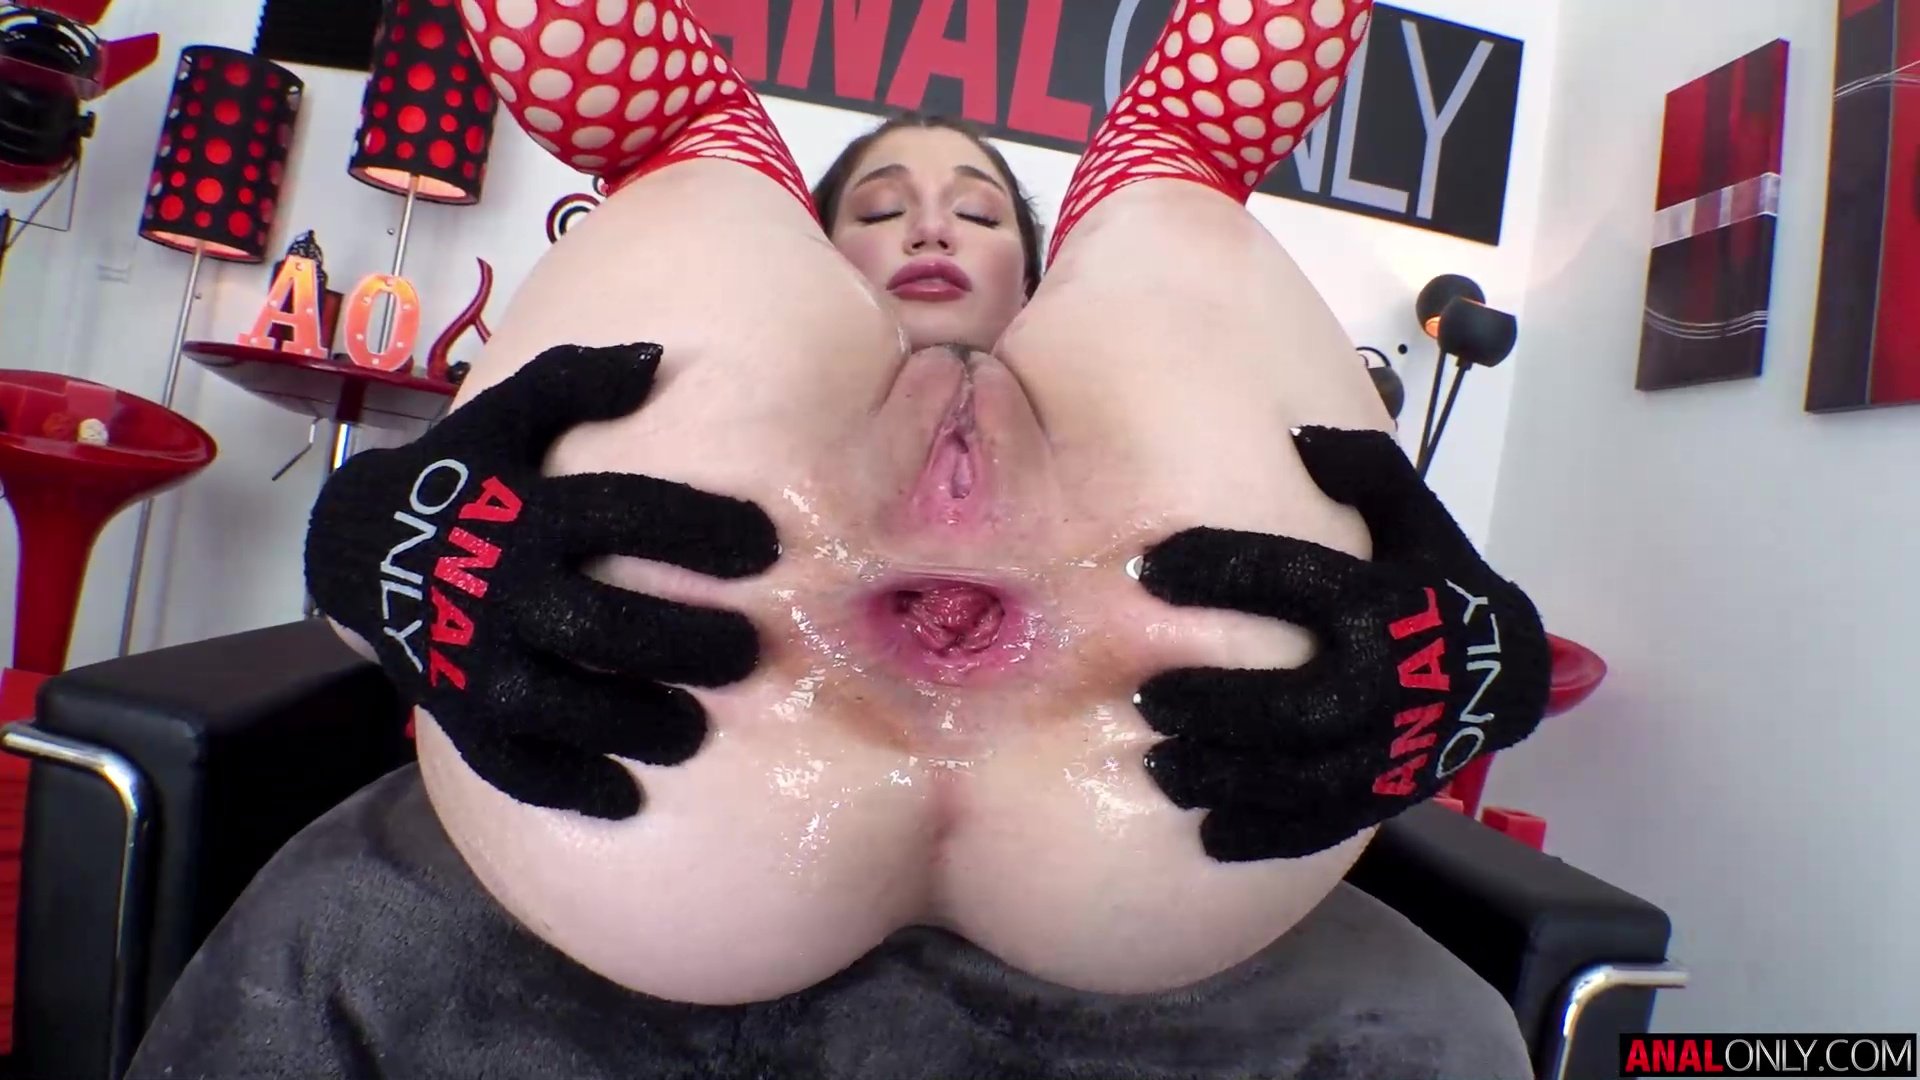 Download AnalOnly.com - Lily's Anal Only Demands